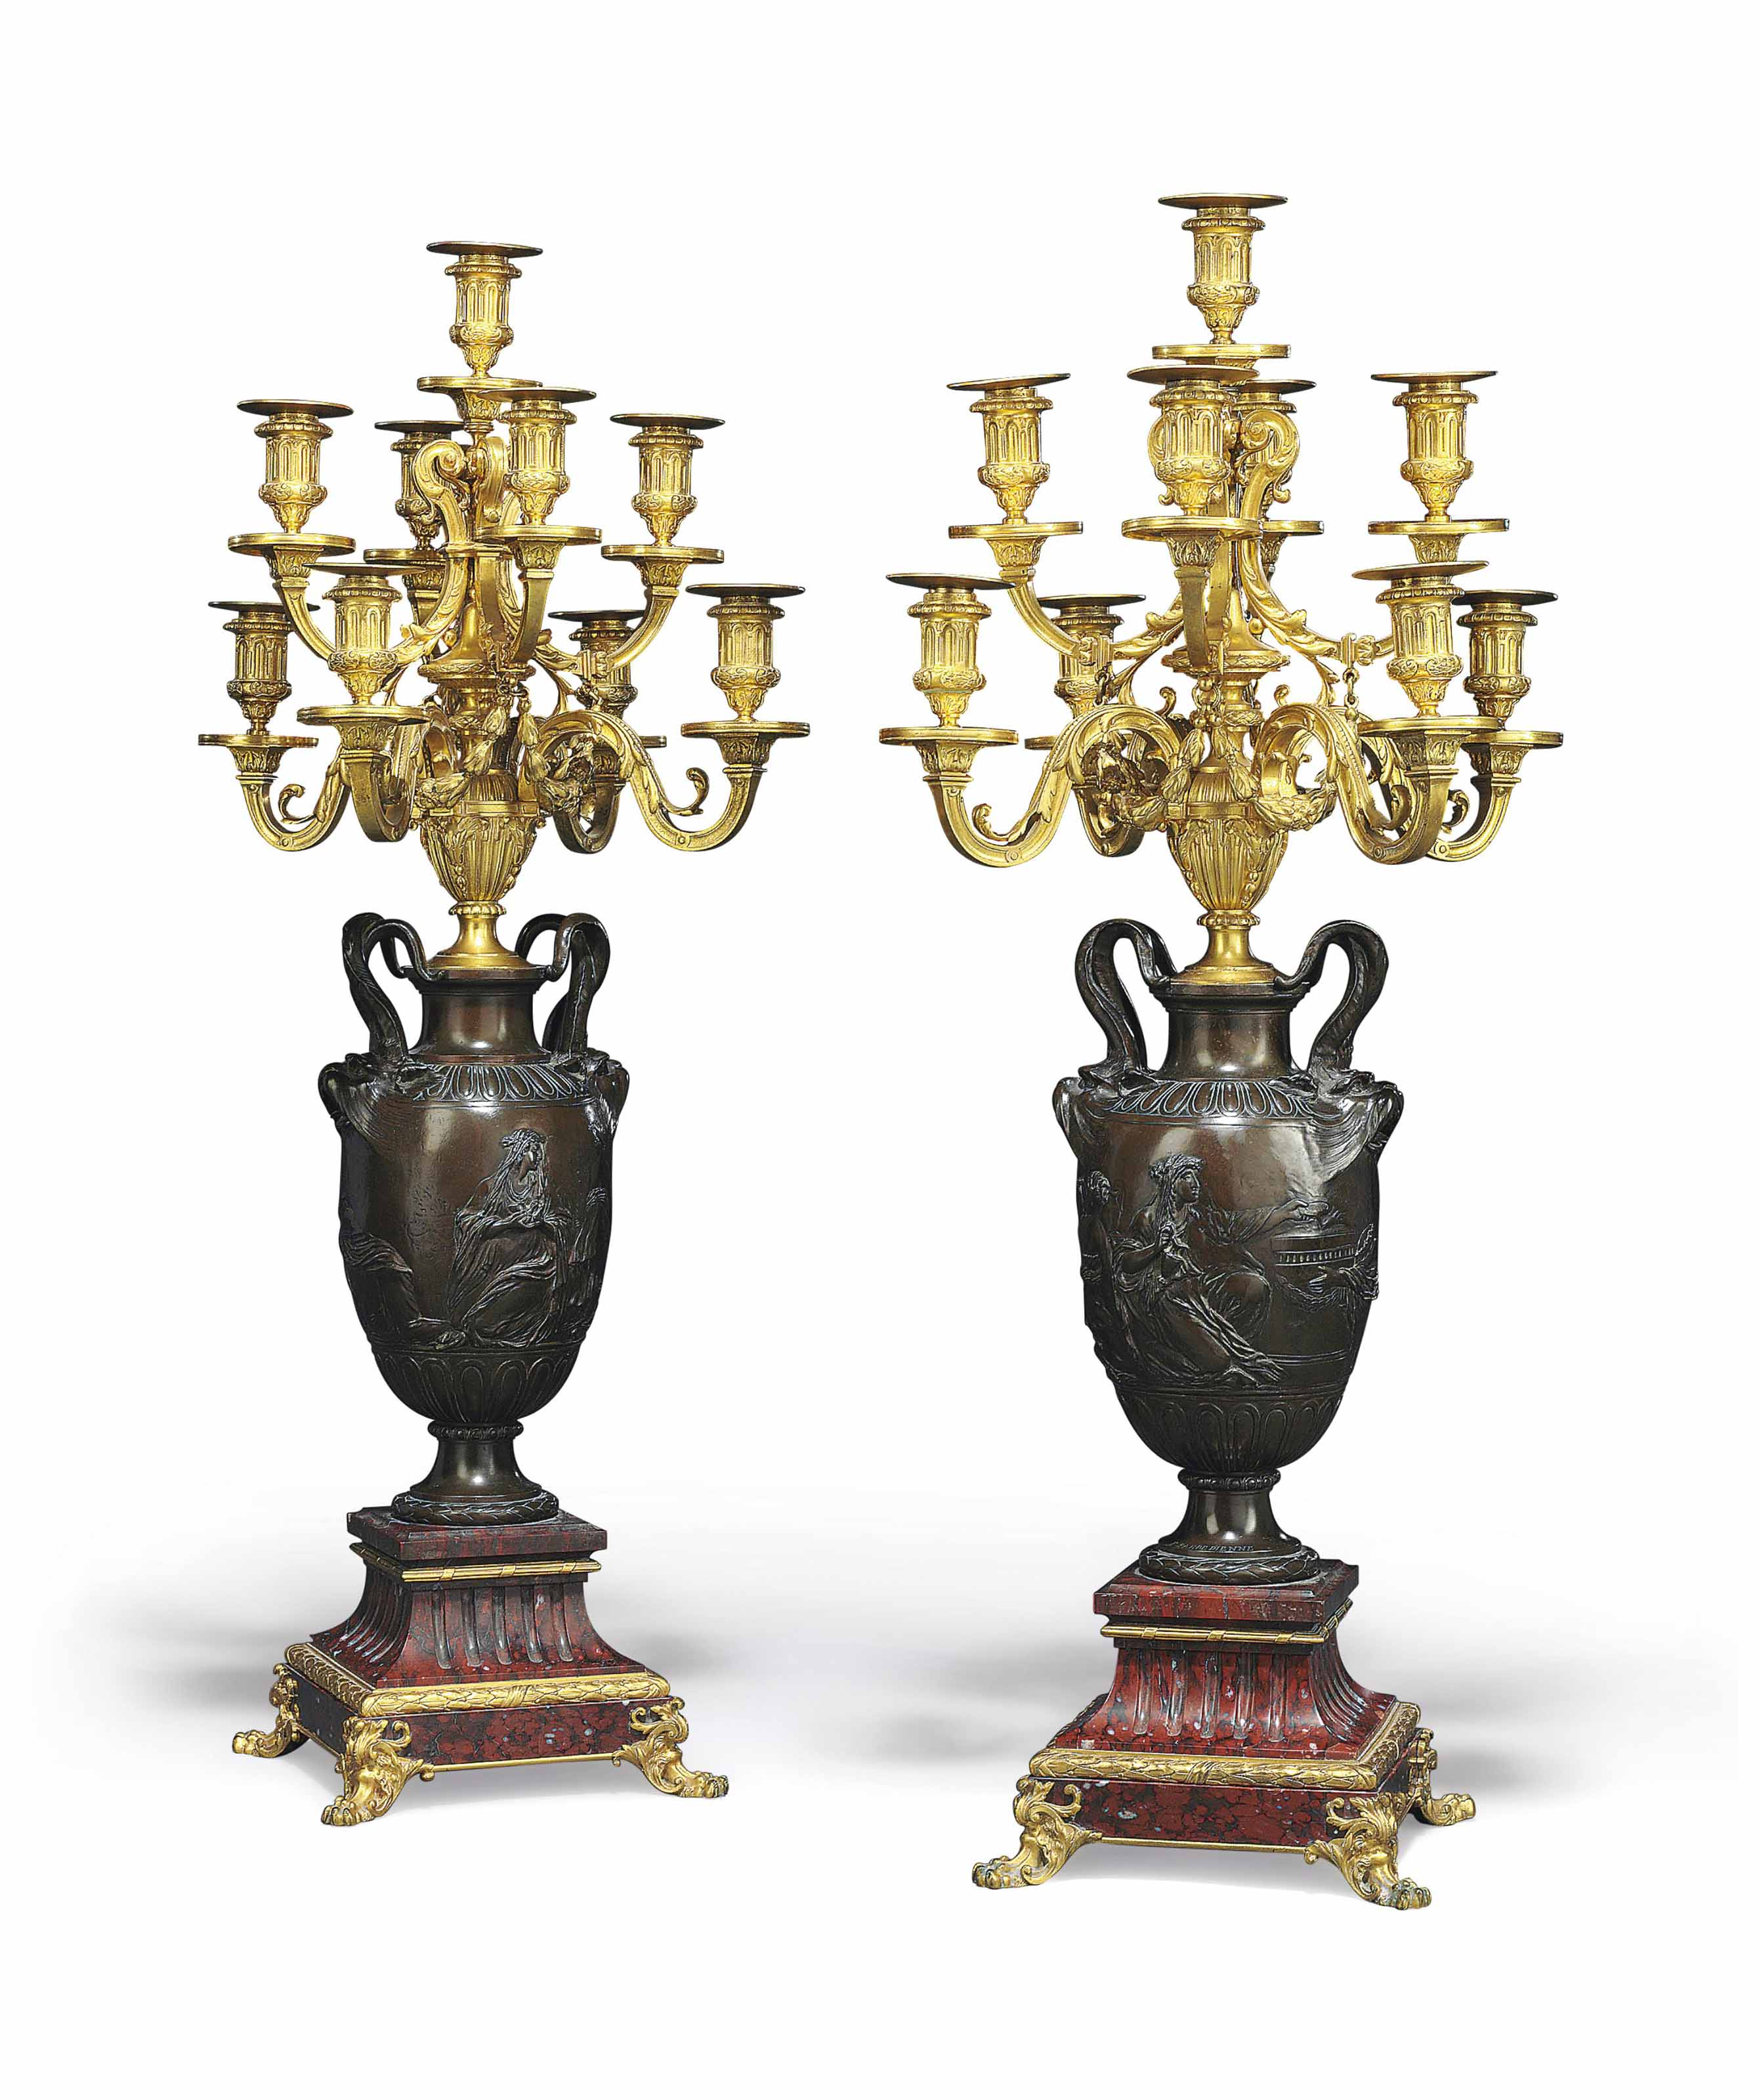 A PAIR OF FRENCH GILT AND PATINATED-BRONZE AND MARBLE NINE-LIGHT CANDELABRA